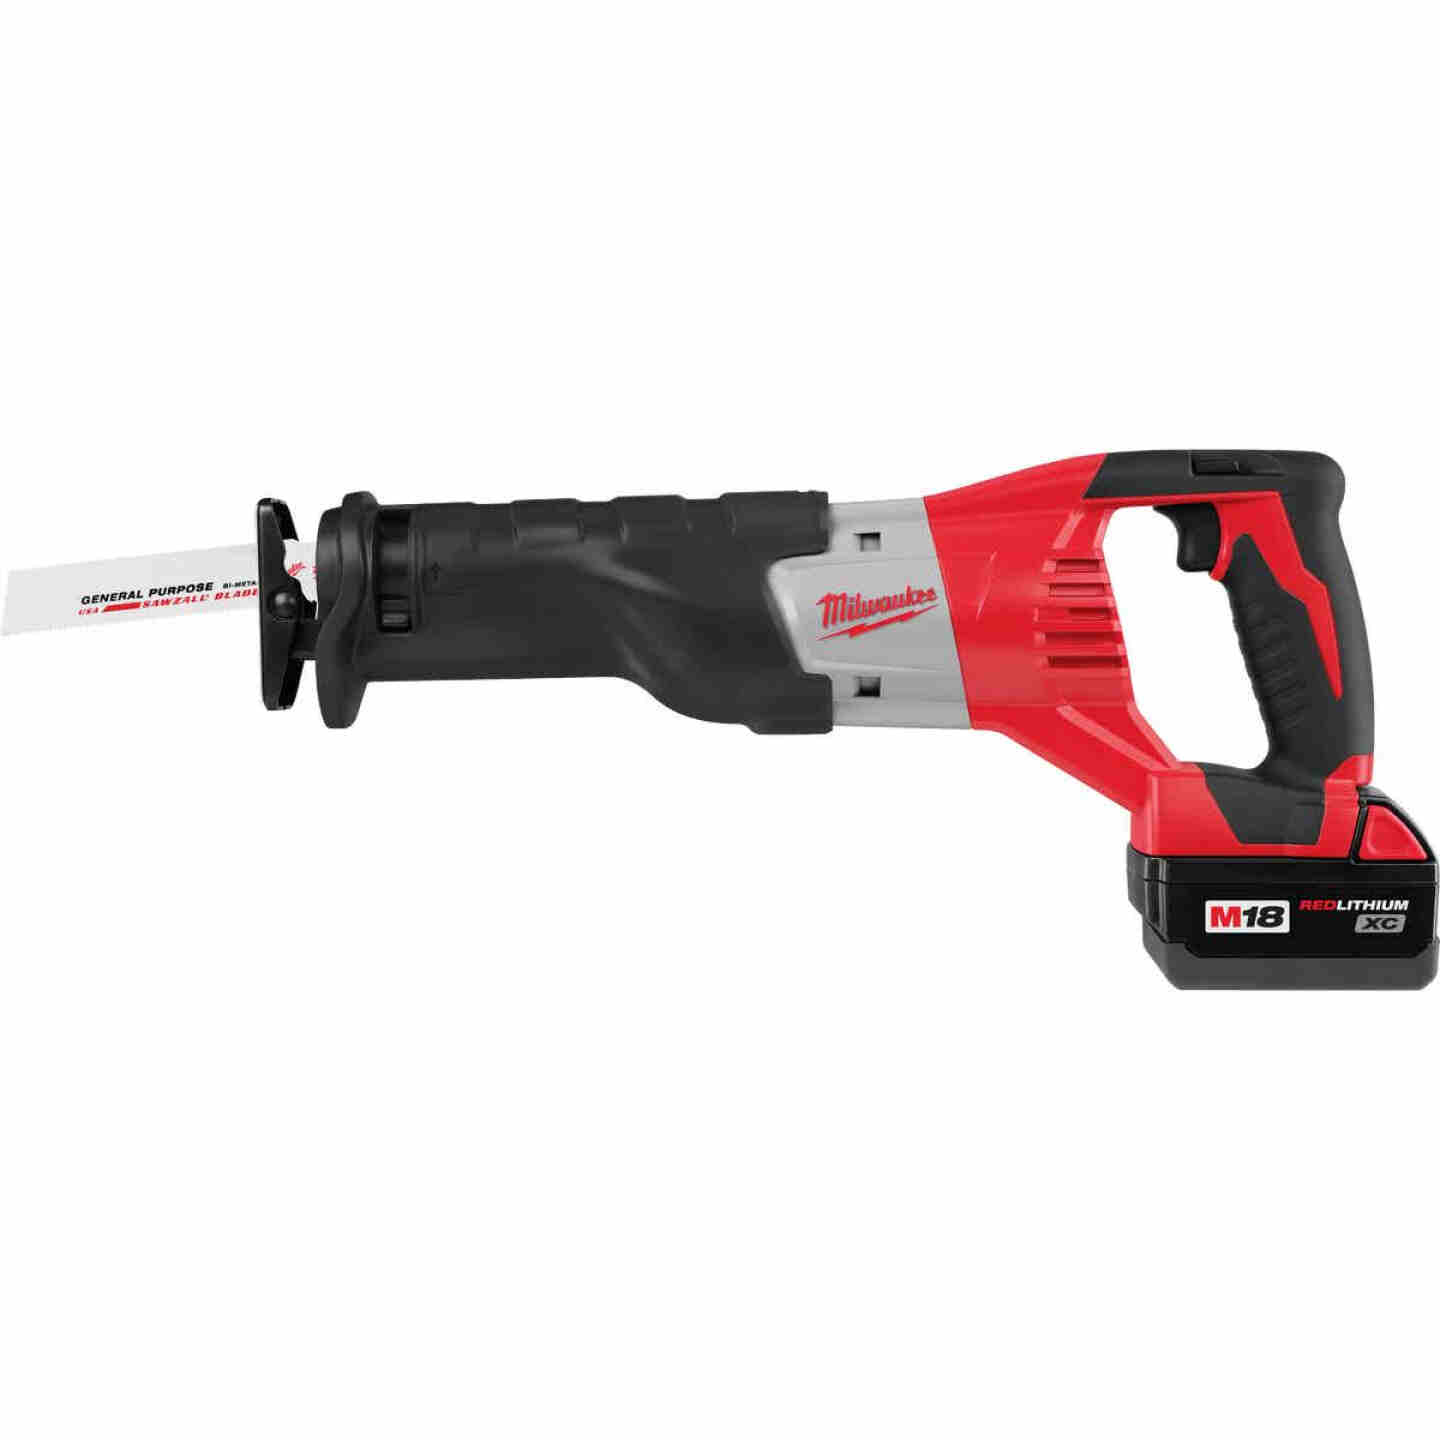 Milwaukee Sawzall M18 18 Volt Lithium-Ion Cordless Reciprocating Saw Kit Image 3